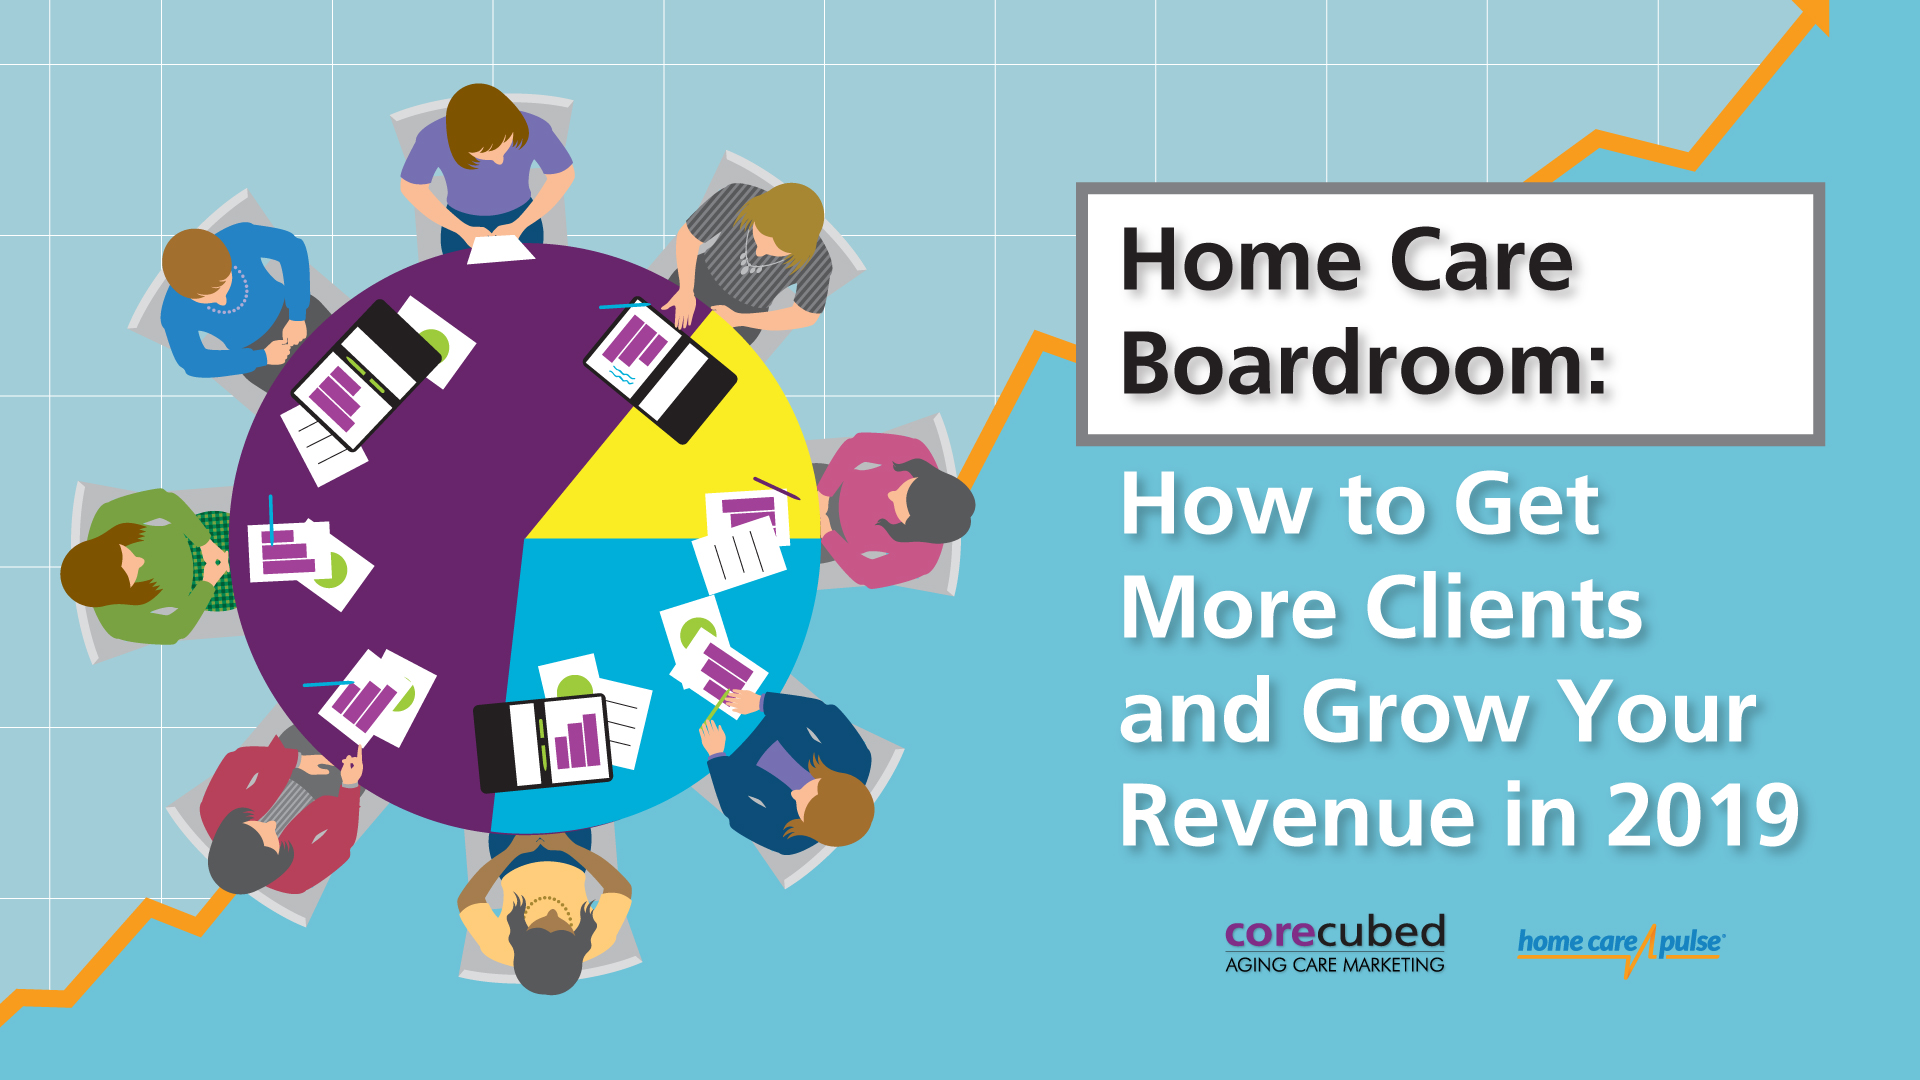 Home Care Boardroom: How to Get More Clients and Grow Your Revenue in 2019